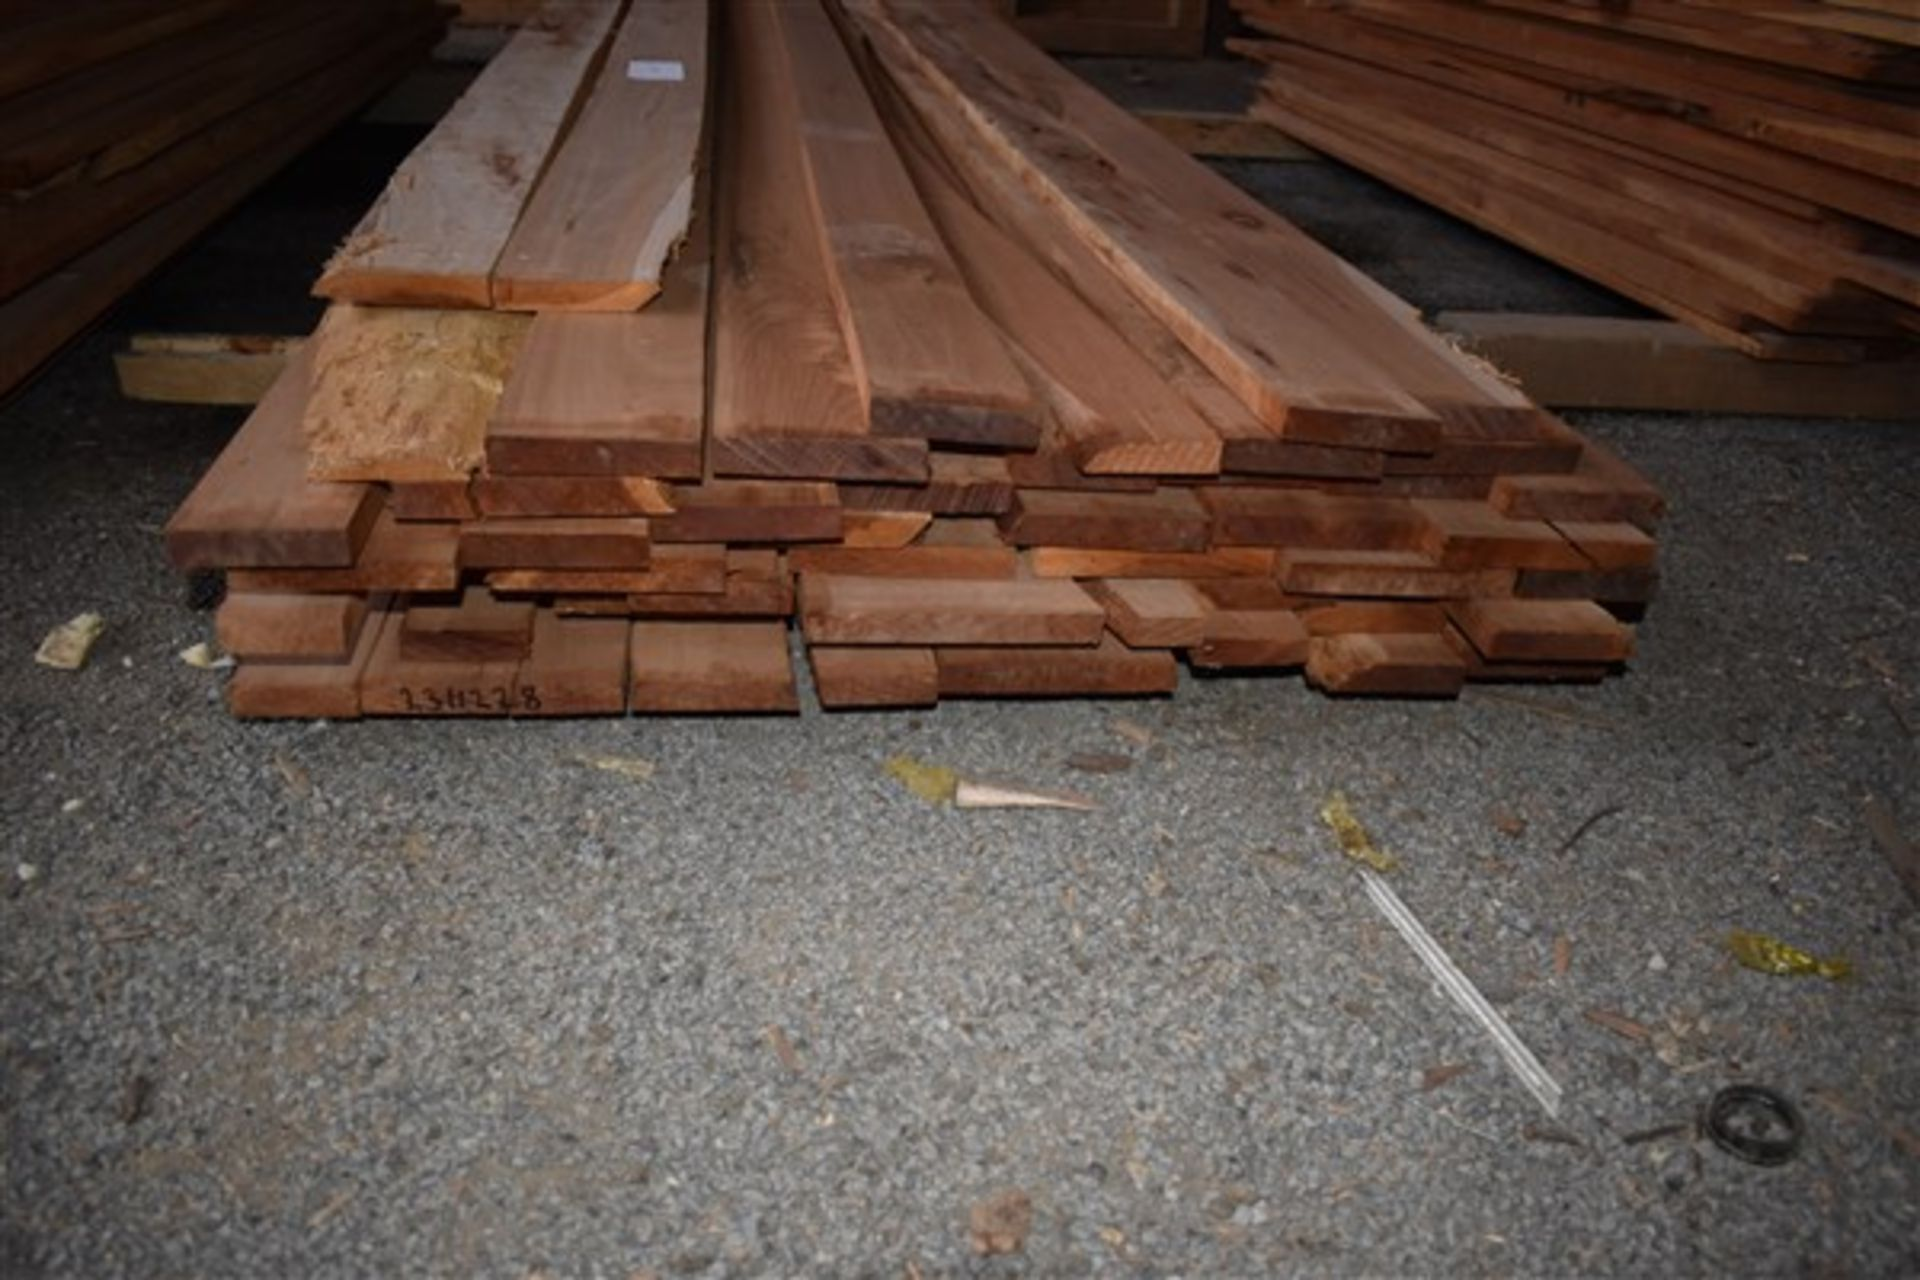 Lot 64 - 4/4 Cherry- Planed 2 sides